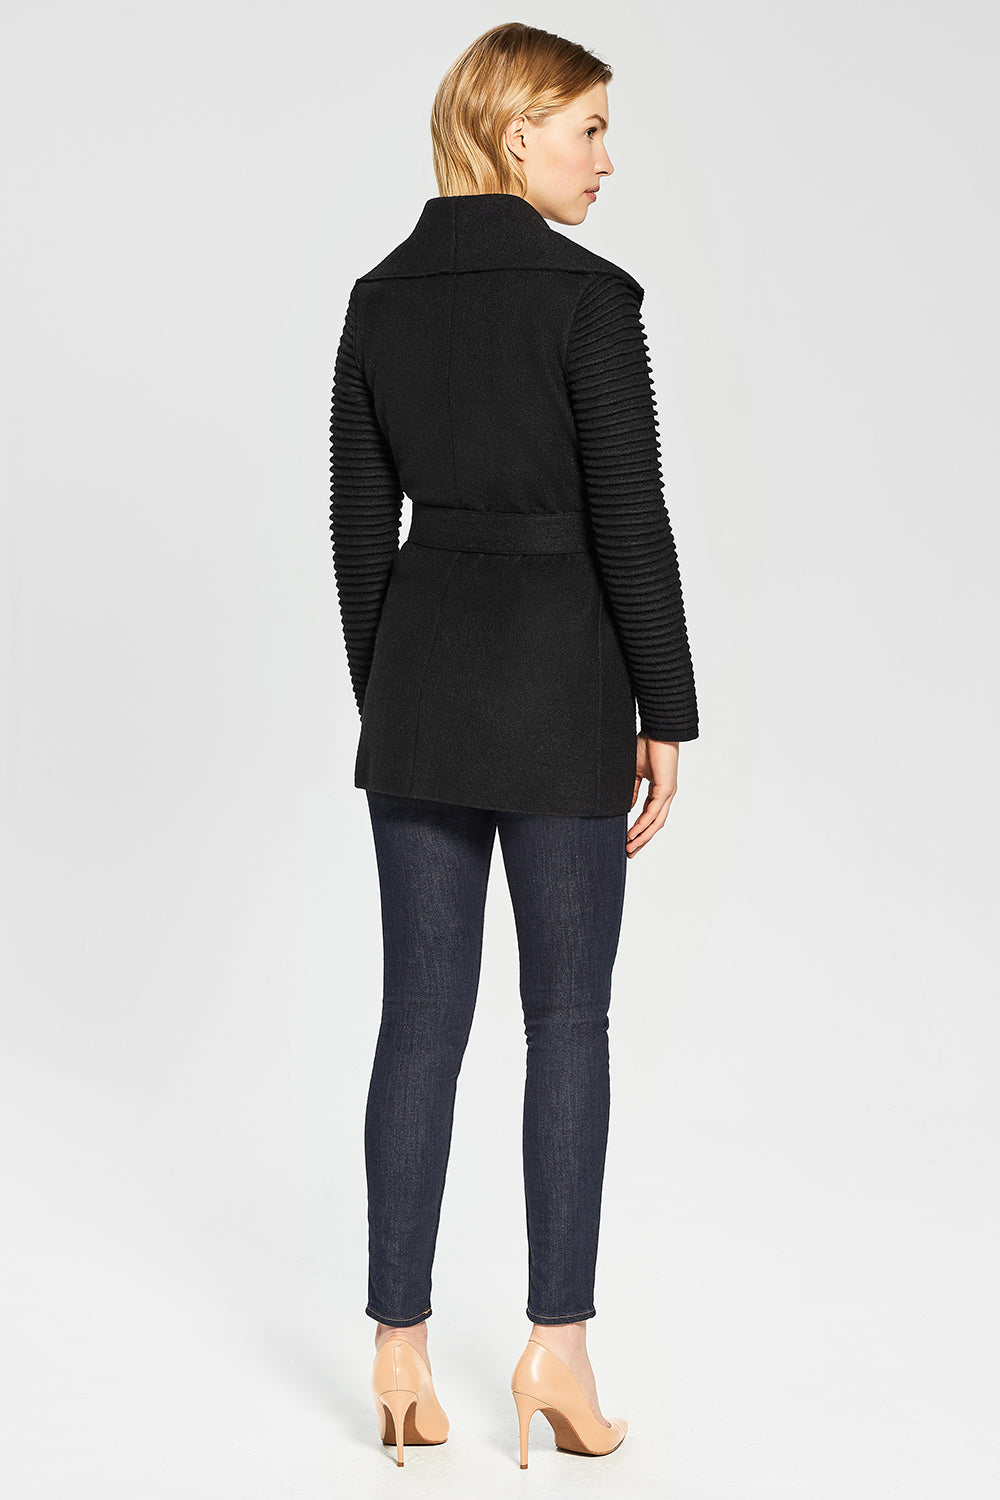 Sentaler Wrap Coat with Ribbed Sleeves featured in Superfine Alpaca and available in Black. Seen from Back.